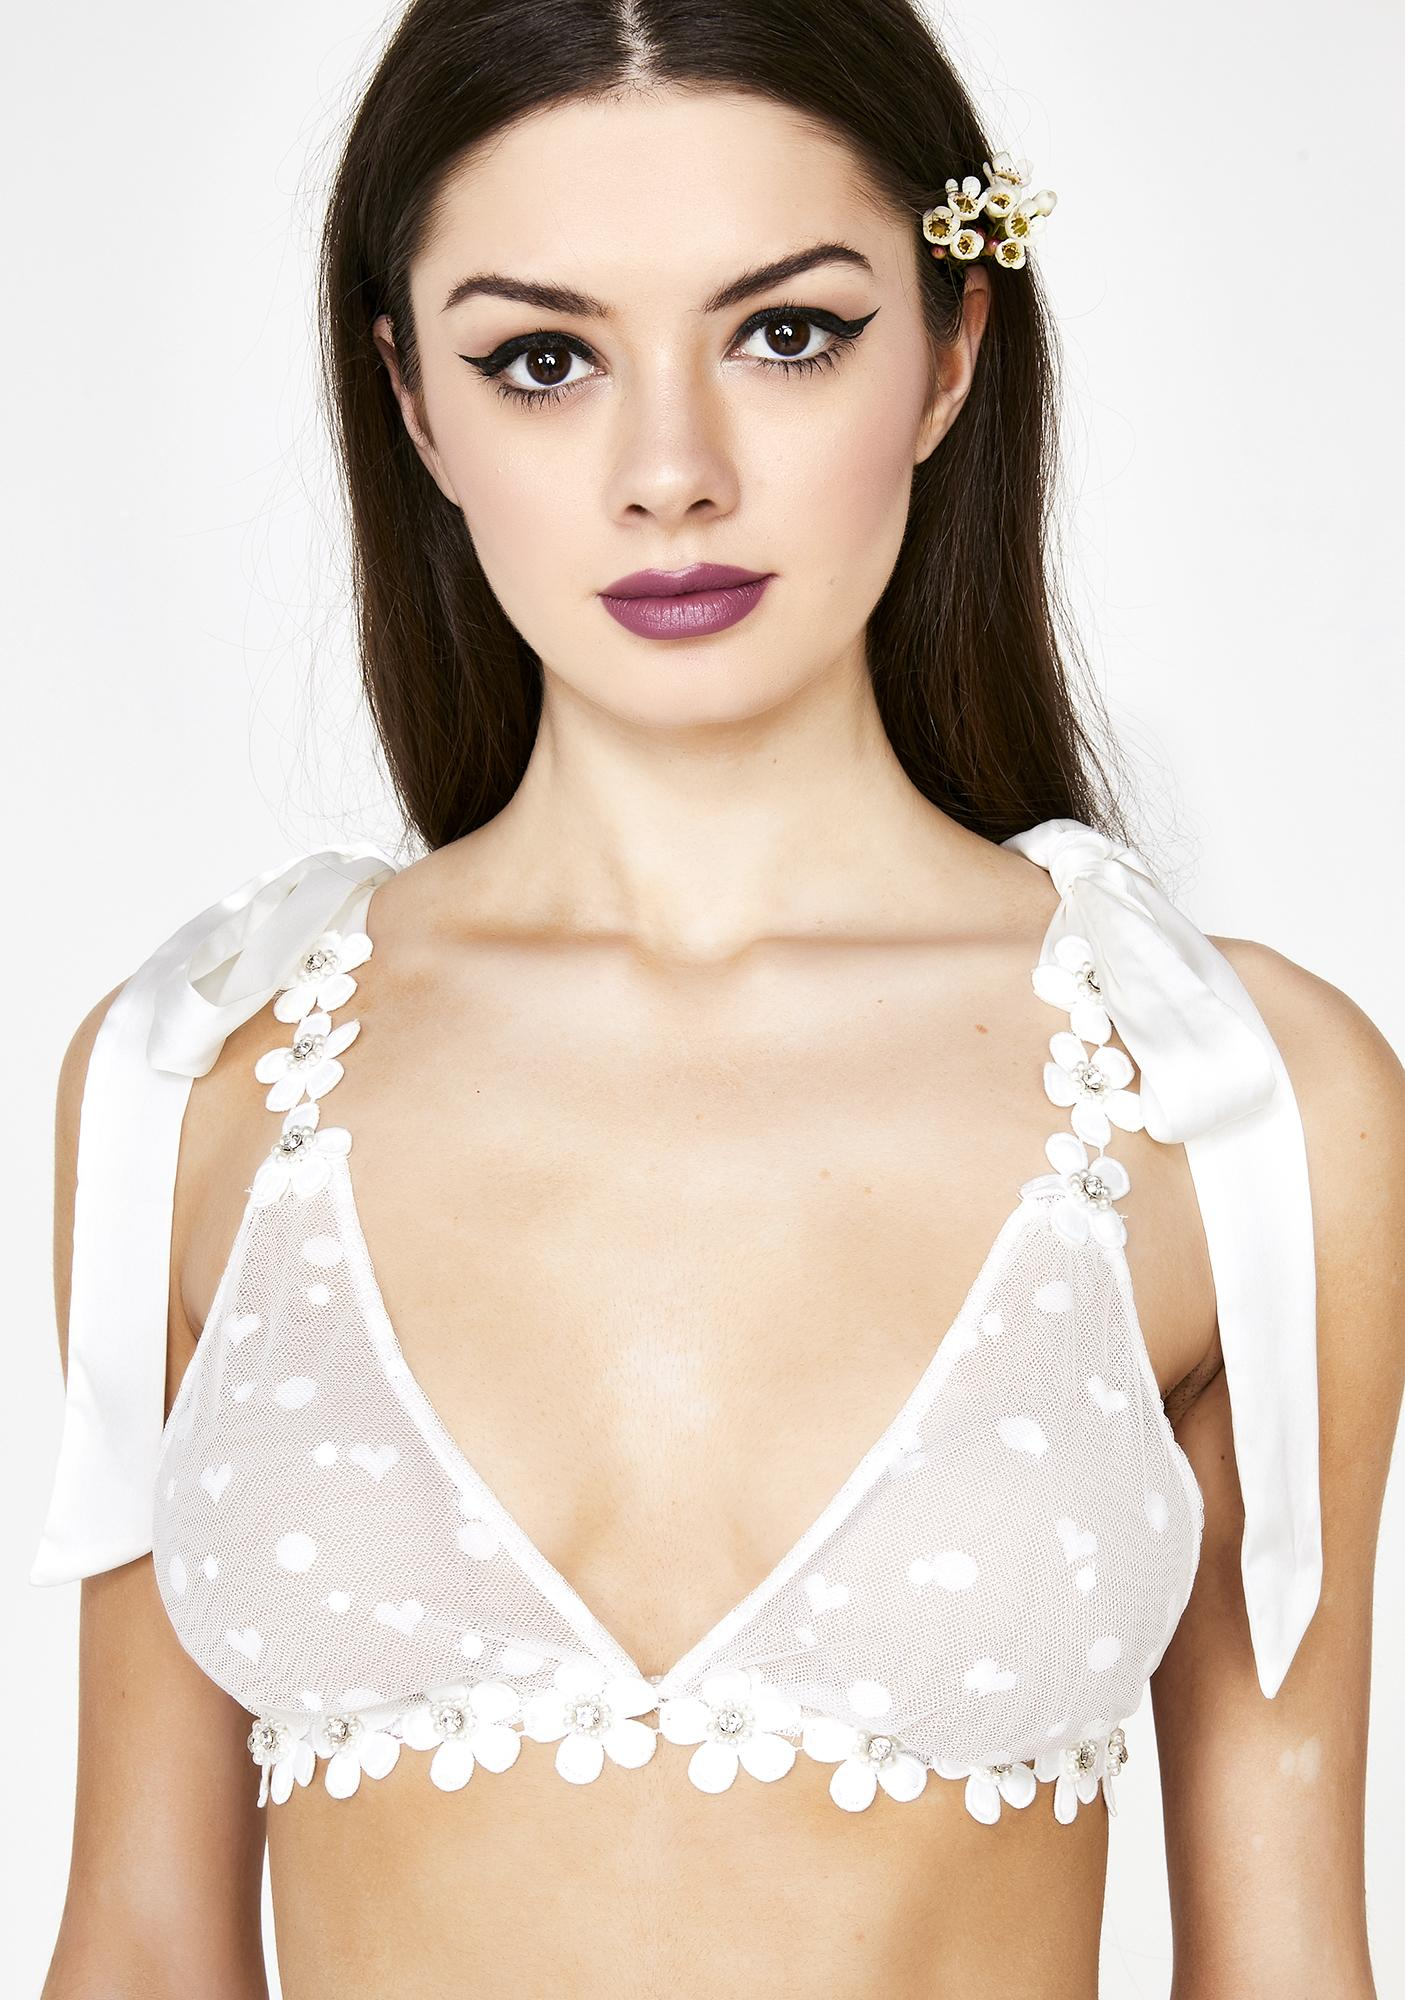 bd14e5eb61 ... For Love   Lemons Marguerite Tie Bra With Removable Dress ...